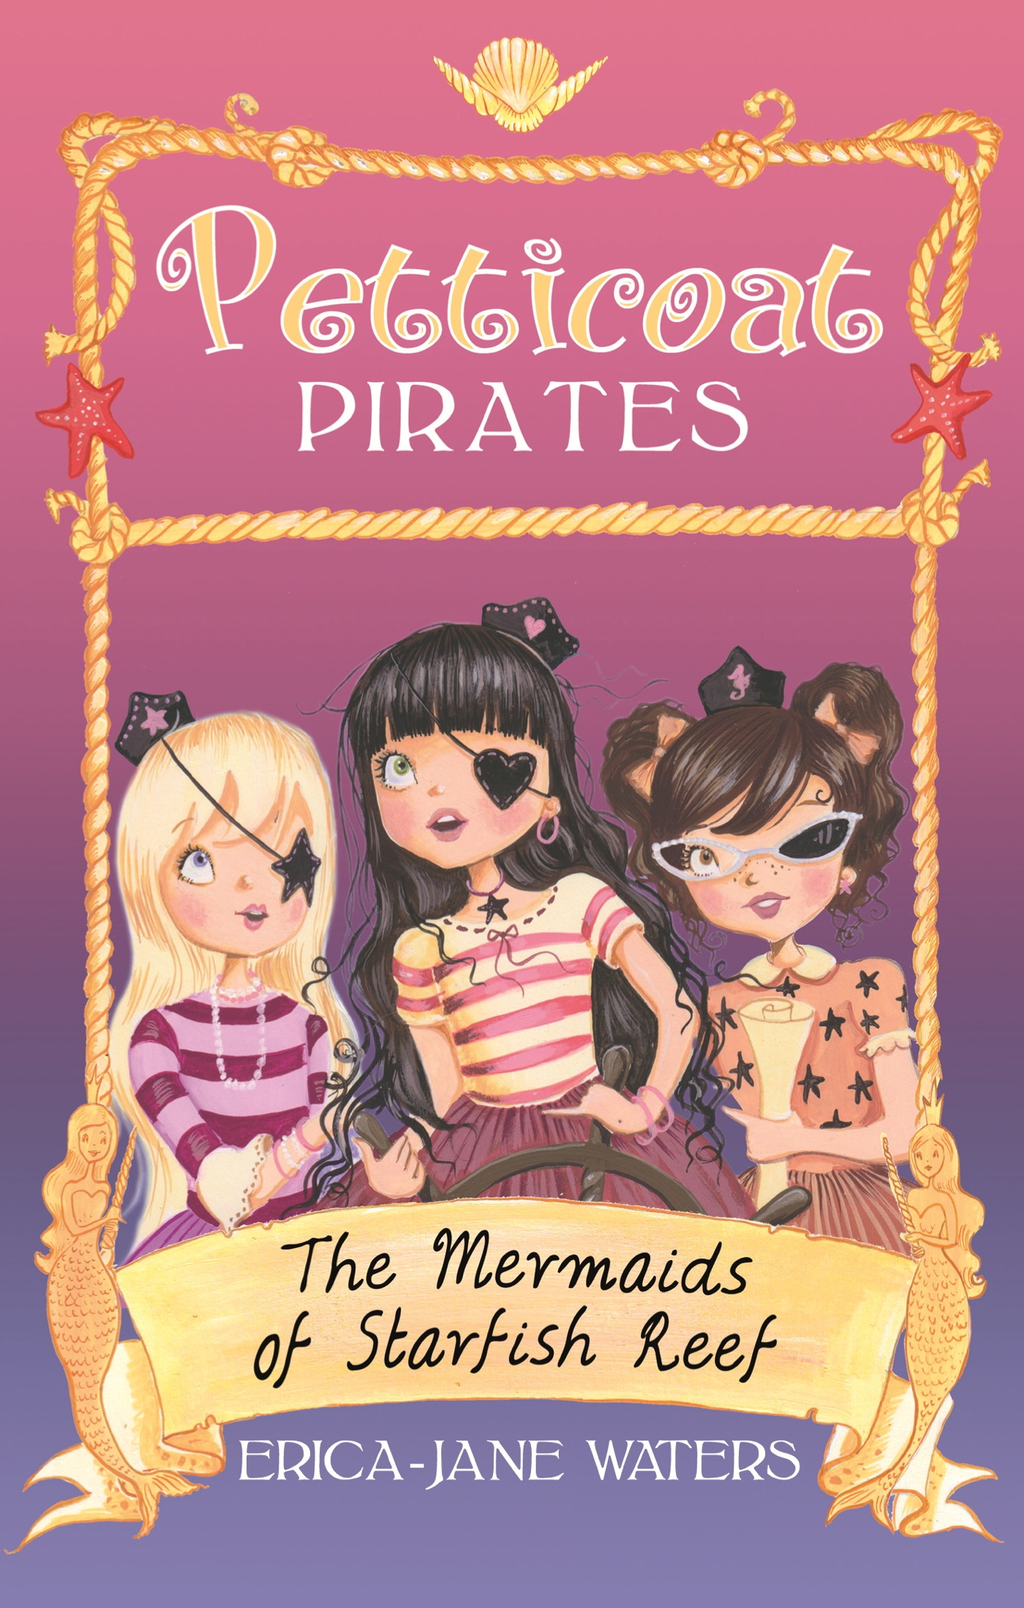 Petticoat Pirates: The Mermaids of Starfish Reef